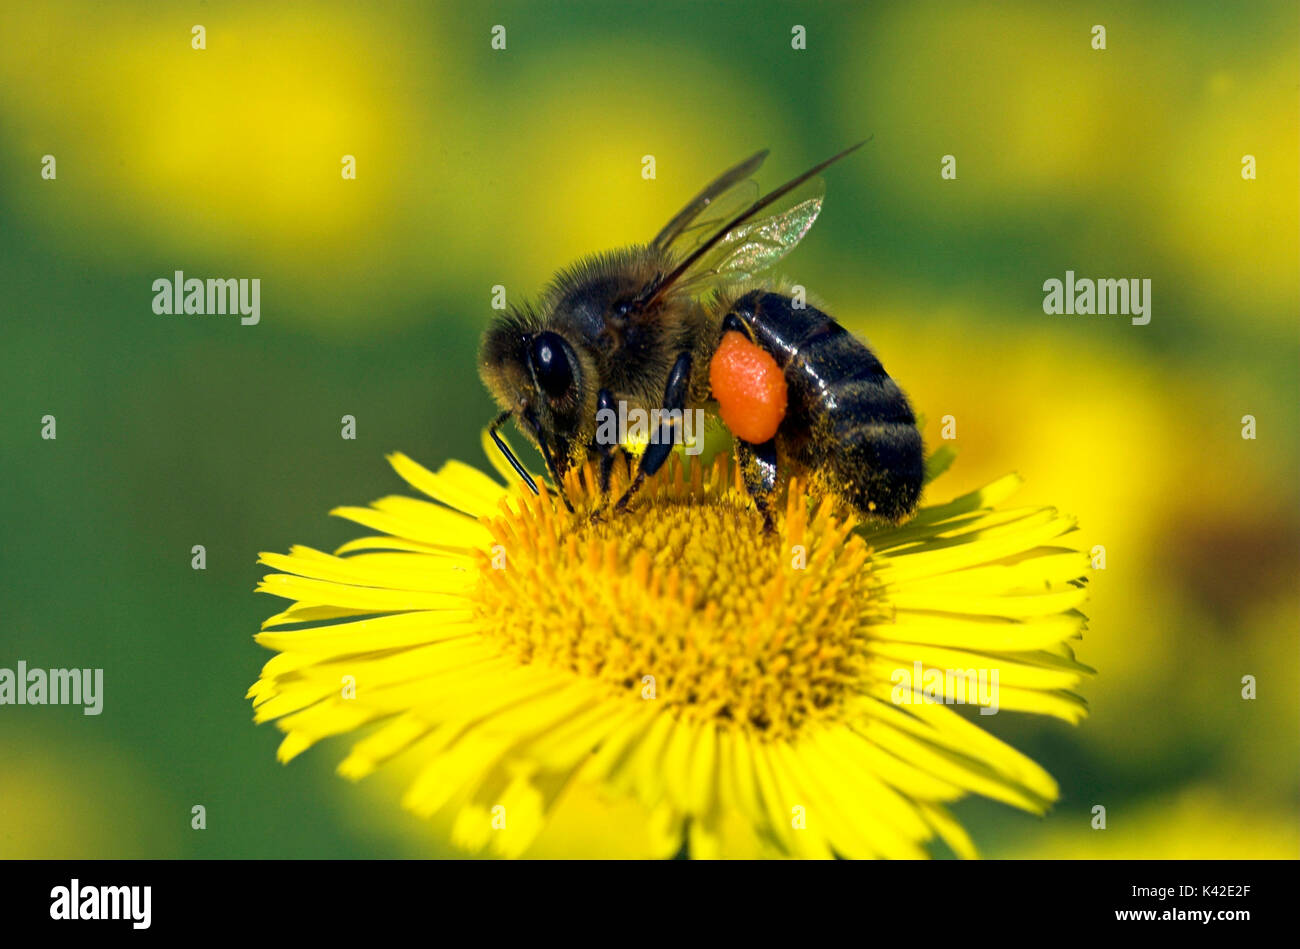 Honey Bee, Apis mellifera, worker bee with pollen sacks on legs, collecting pollen from yellow fleabane flower (pulicaria dysenterica), social, networ - Stock Image